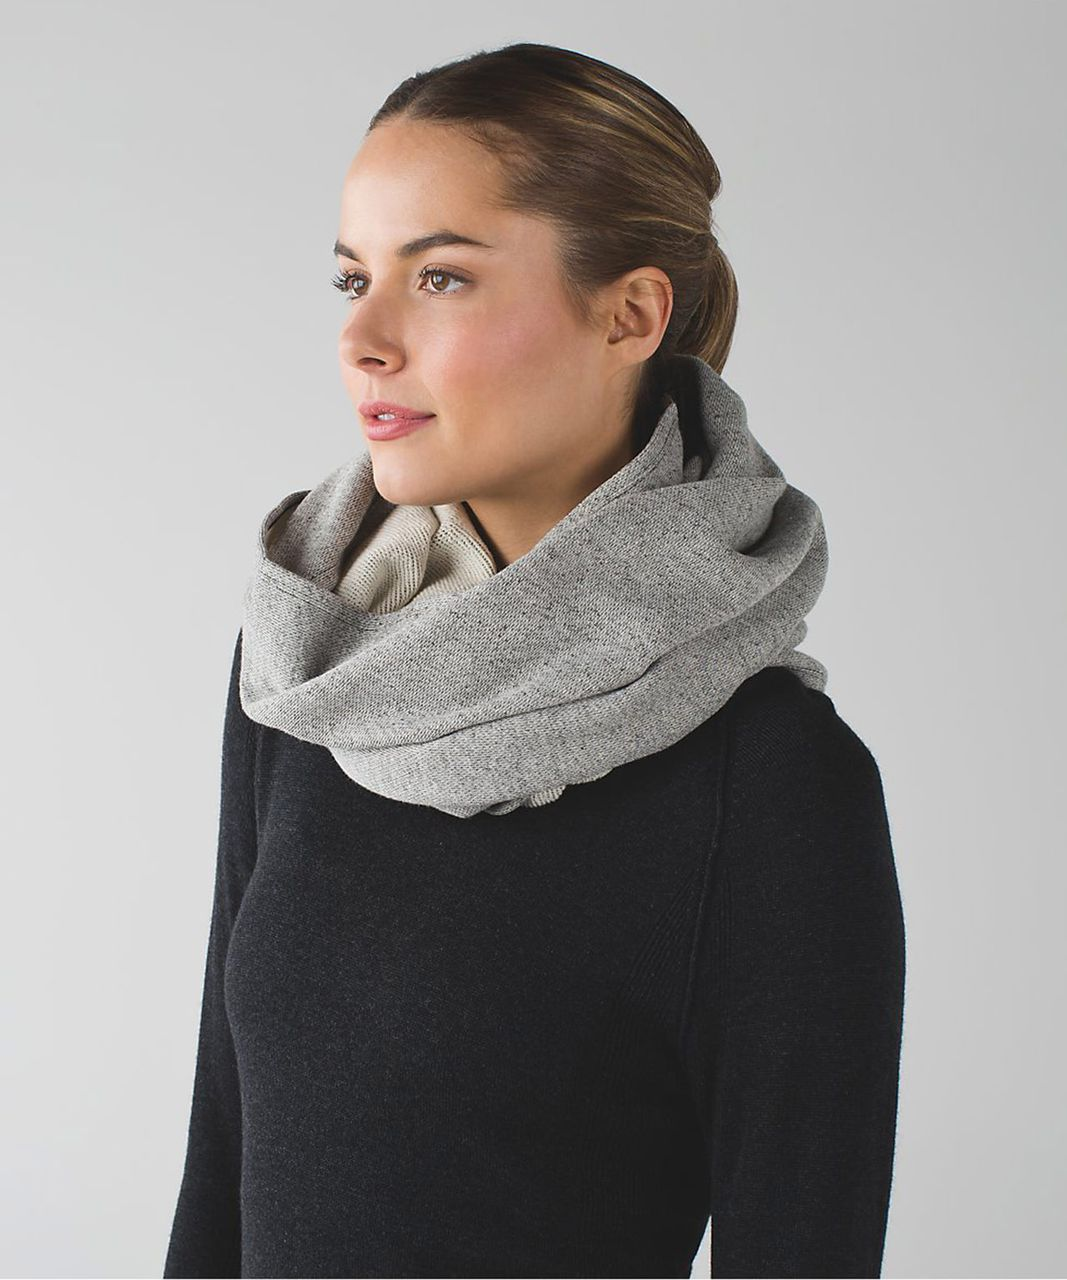 Lululemon Vinyasa Scarf *Cotton - Heathered Black